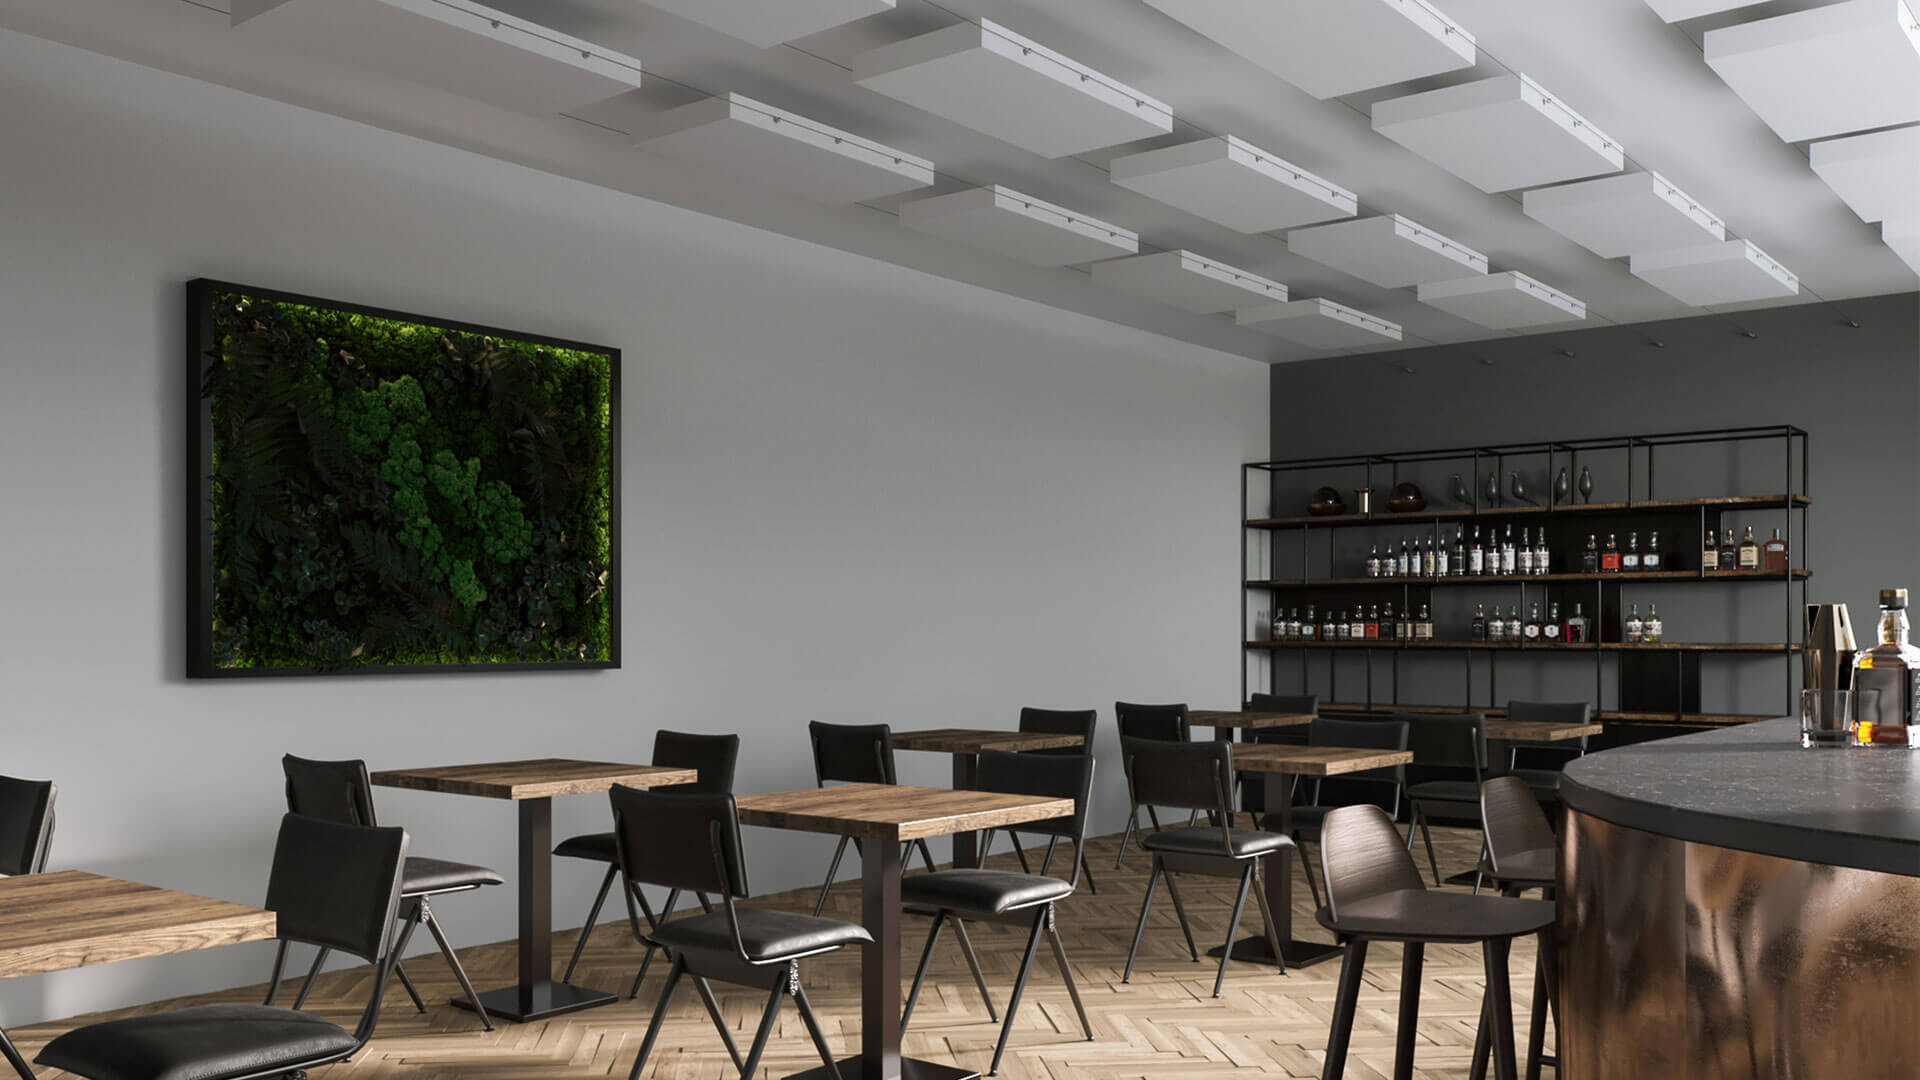 aixFOAM suspended ceilings for sound insulation